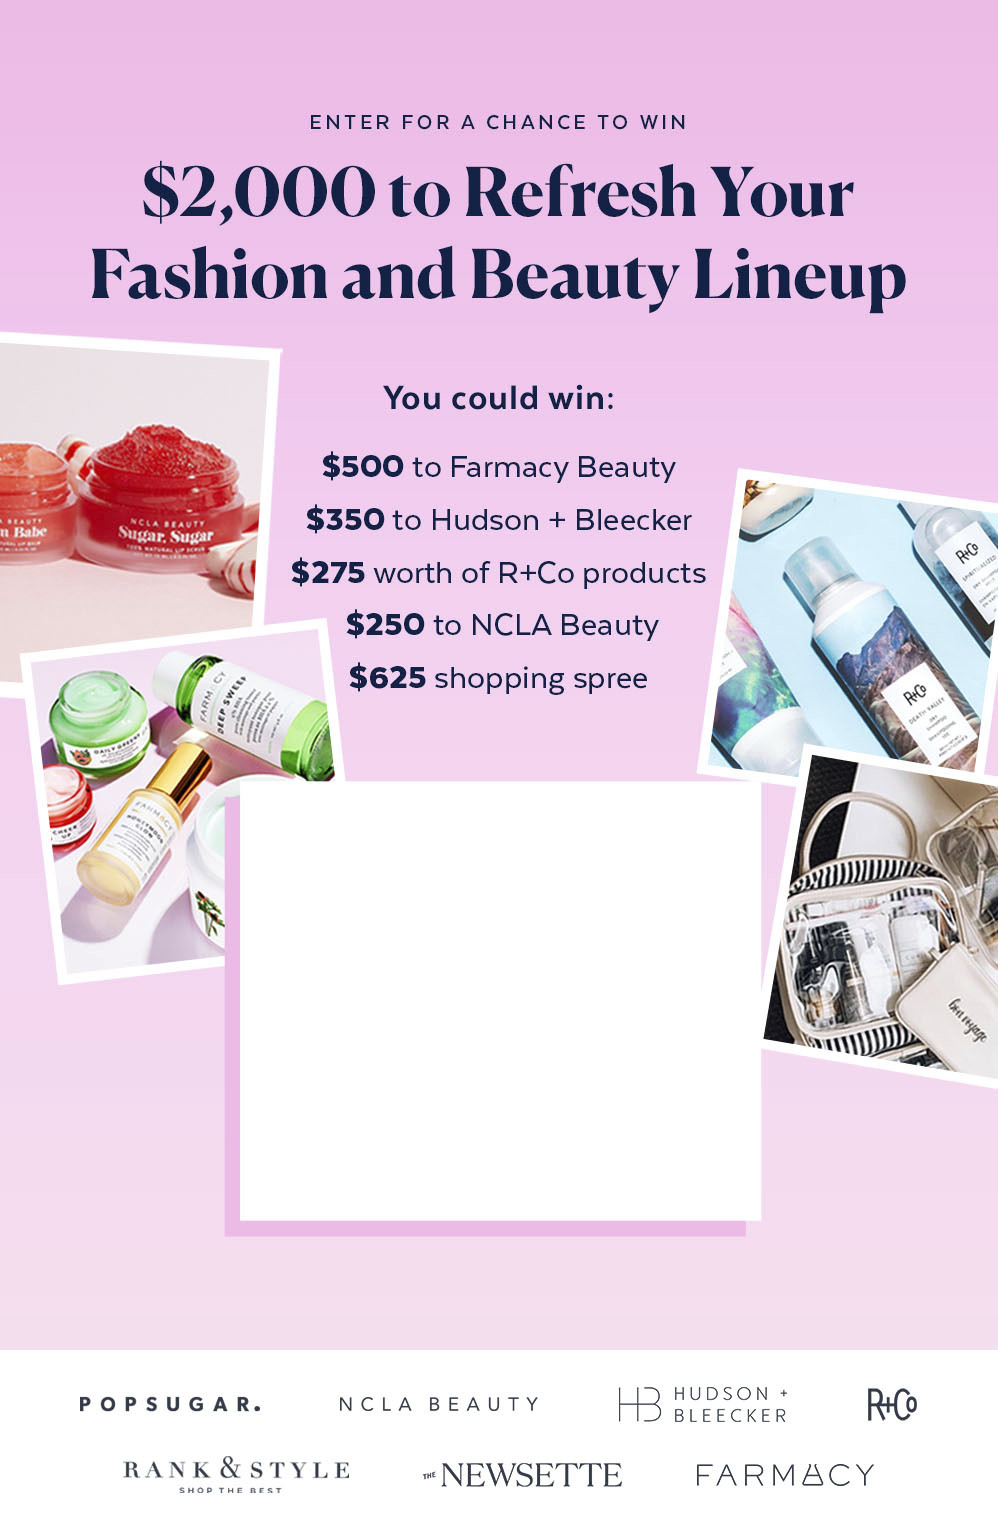 Win $2,000 to Refresh Your Fashion and Beauty Lineup